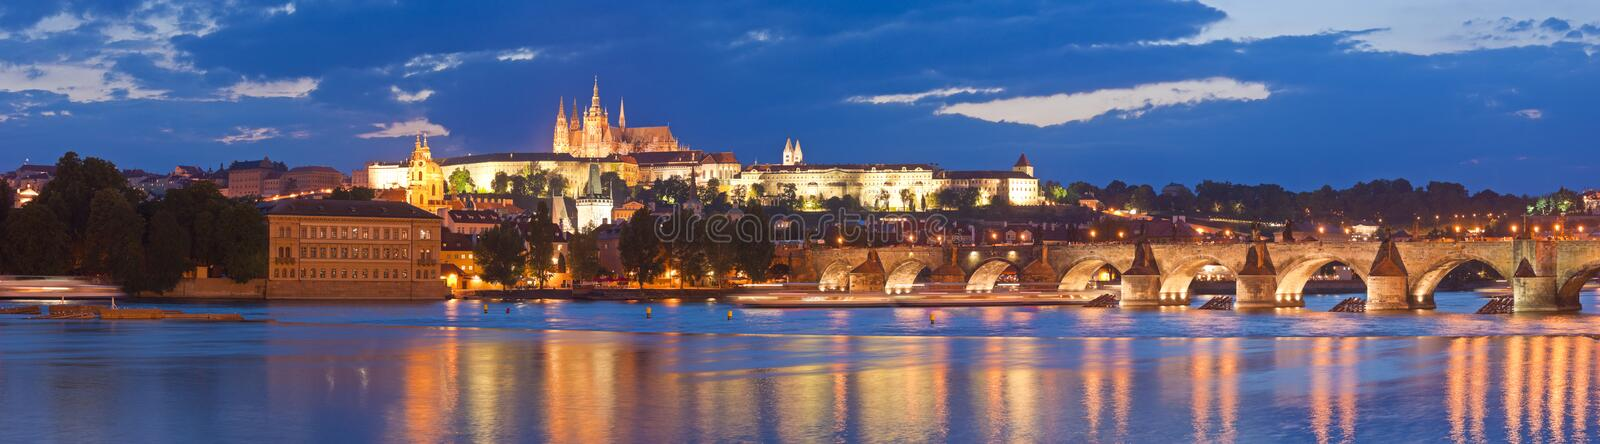 St Vitus Cathedral, Prague Castle and Charles Bridge royalty free stock photos